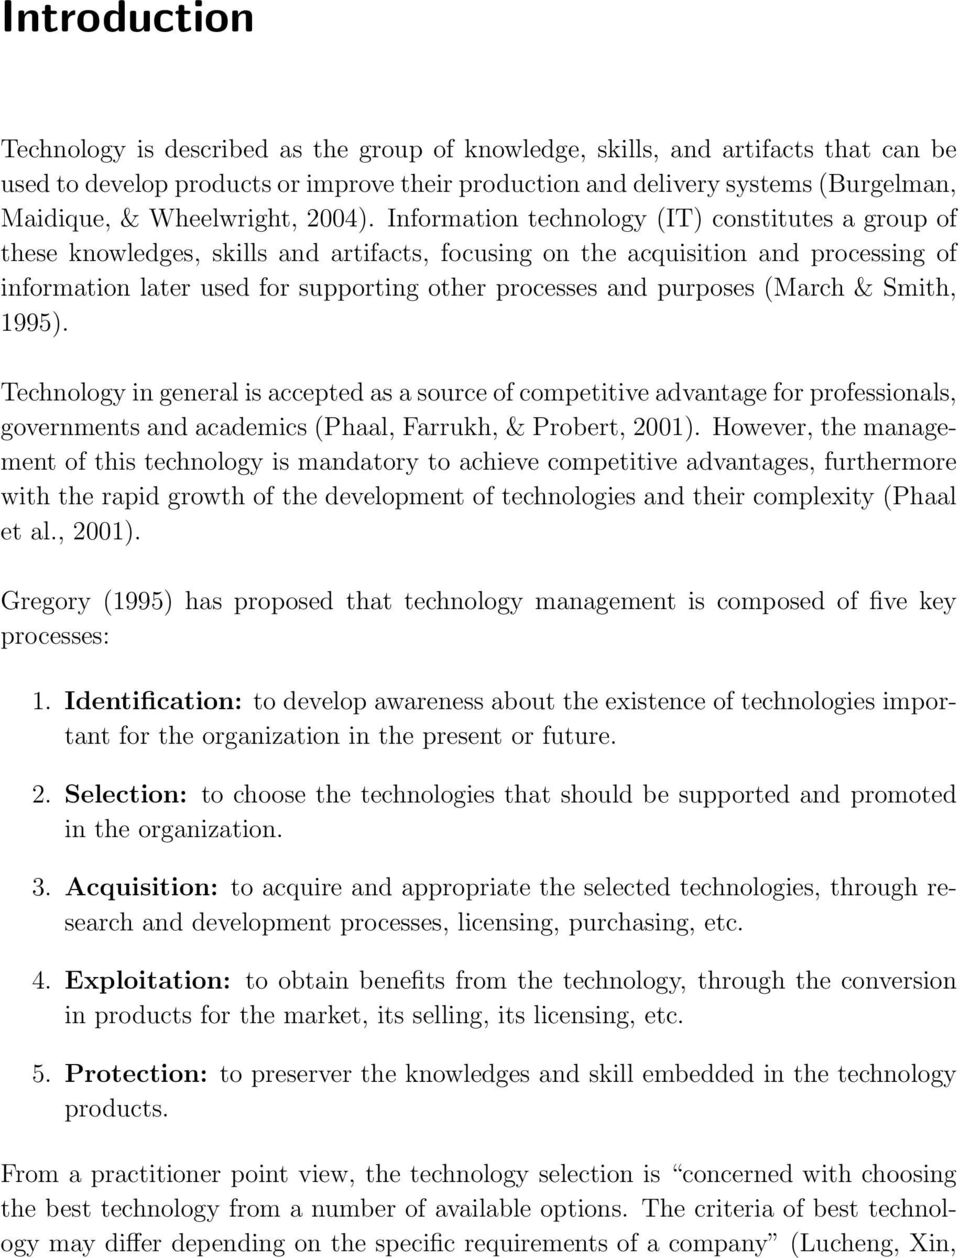 Information technology (IT) constitutes a group of these knowledges, skills and artifacts, focusing on the acquisition and processing of information later used for supporting other processes and